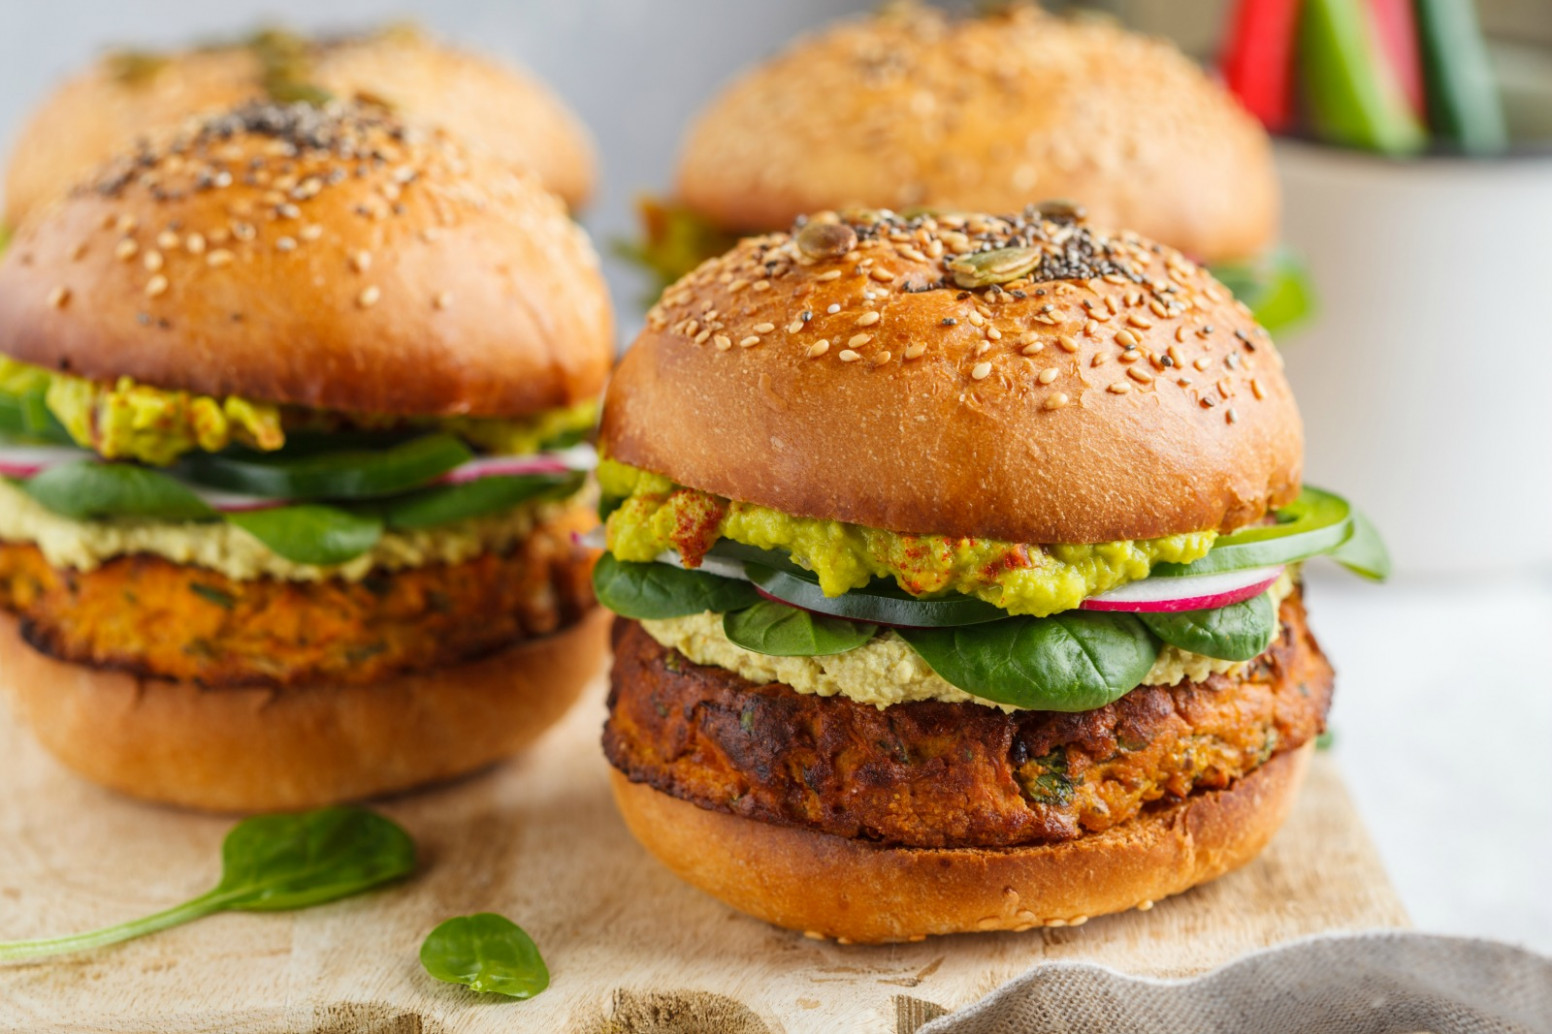 Vegan Sweet Potato Burger with Chickpeas & Spinach - recipes vegetarian burger patty